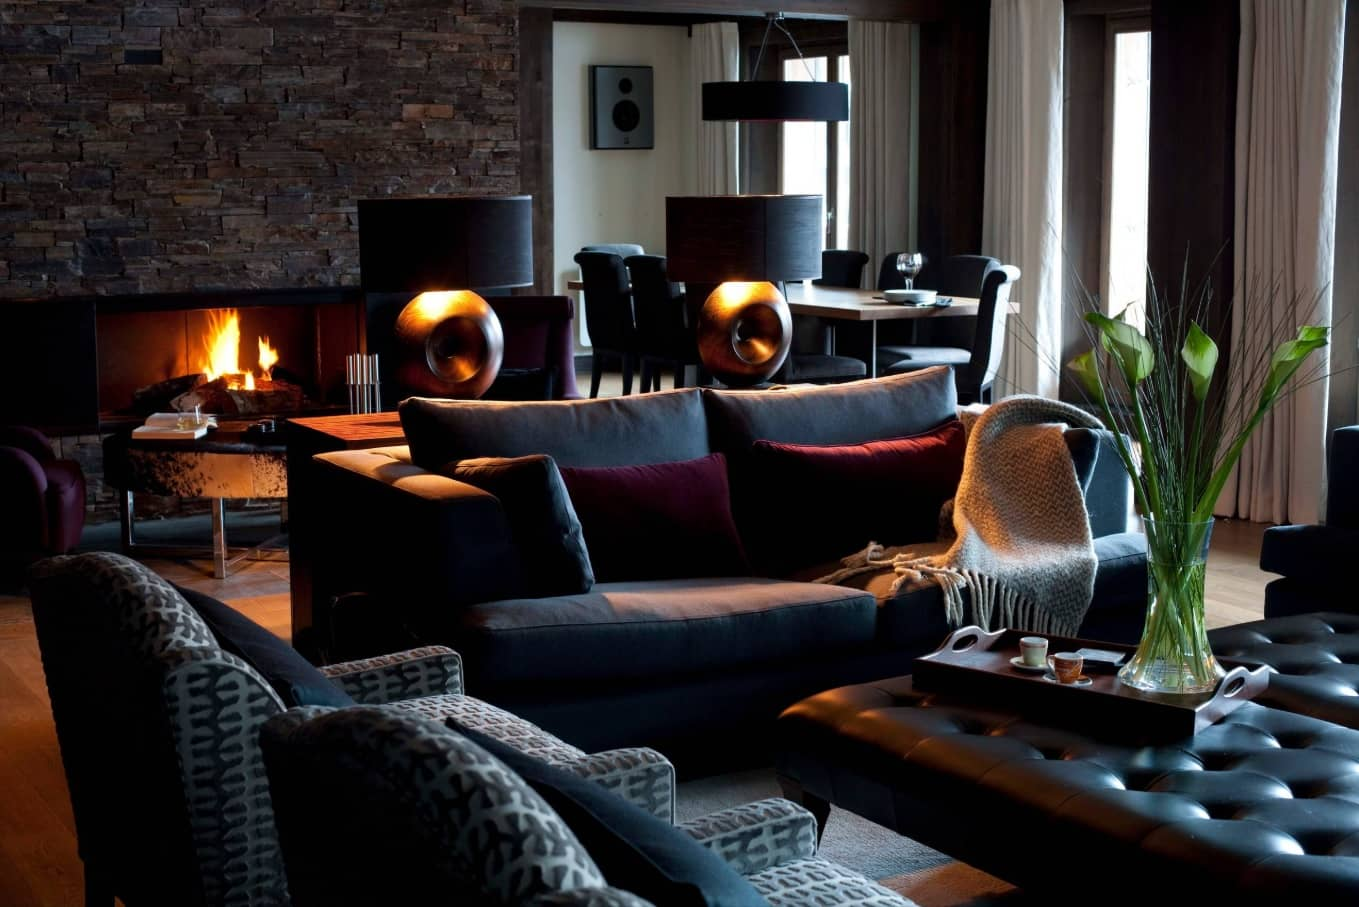 Chalet Style Interior Decoration: Relevance and Finishing Advice. Dark interior with sitting zone